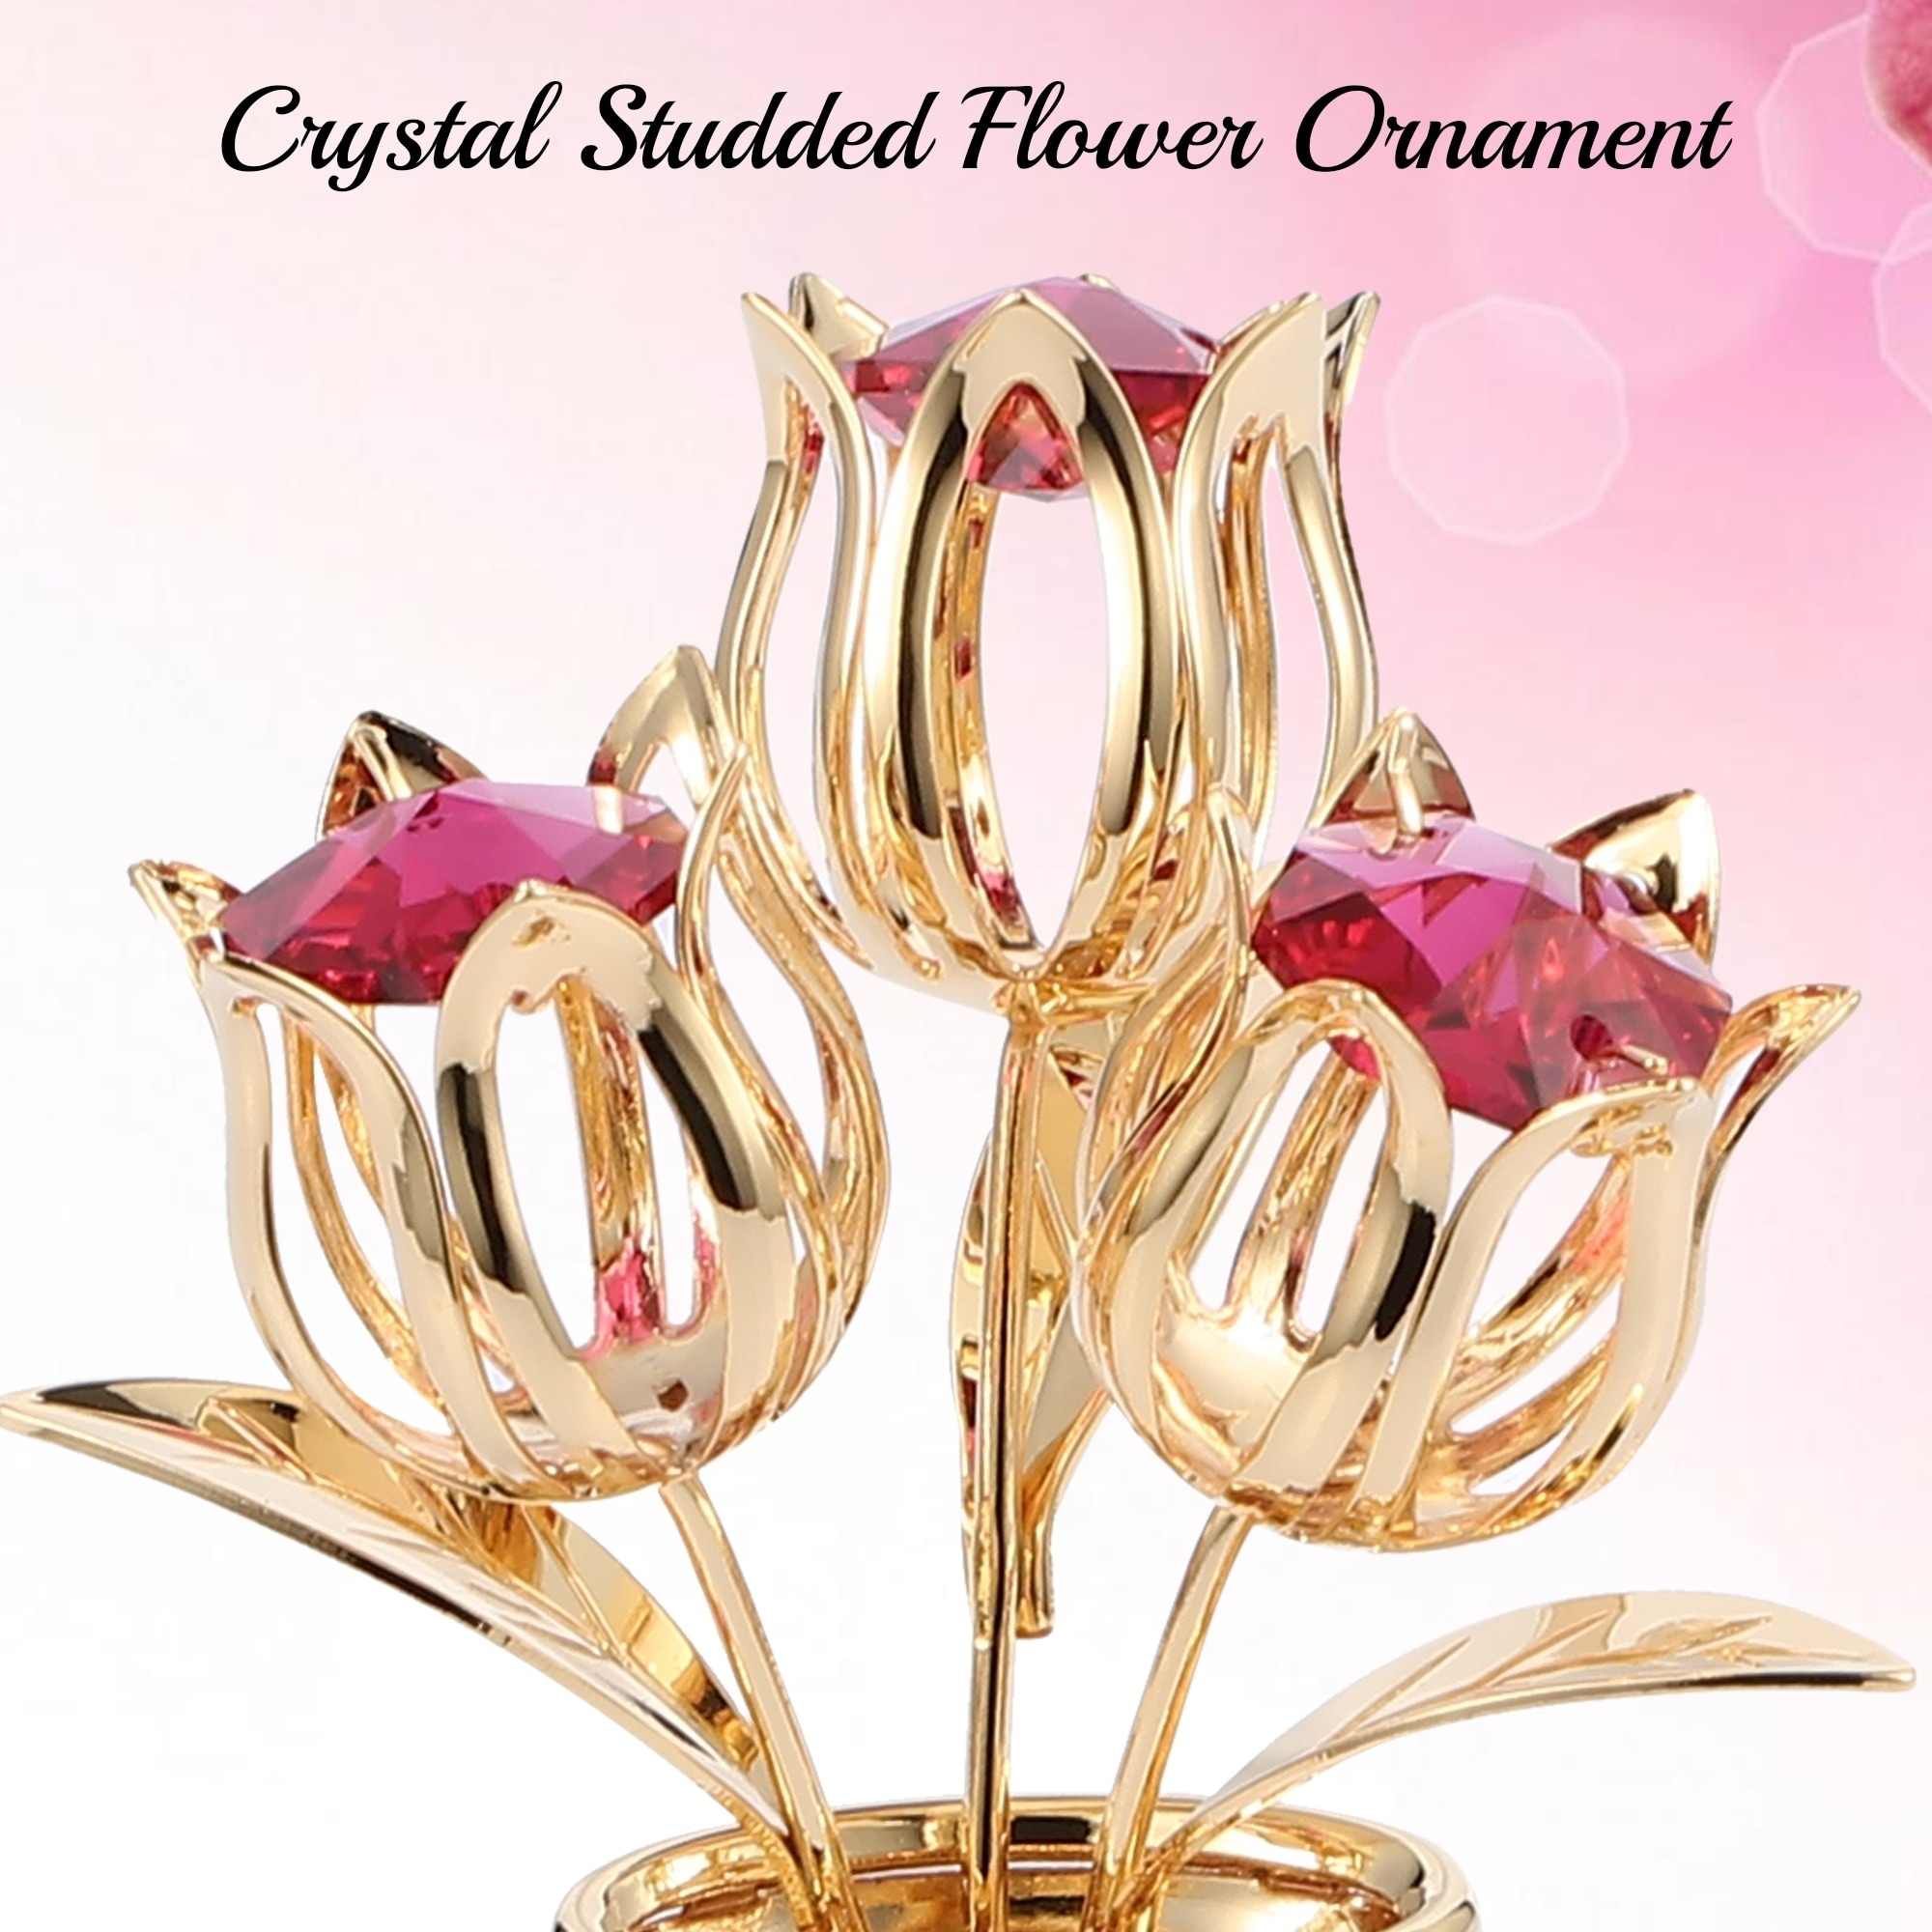 24k Gold Plated Flowers Bouquet /& Vase w// Colorful Matashi Crystals,Butterfly